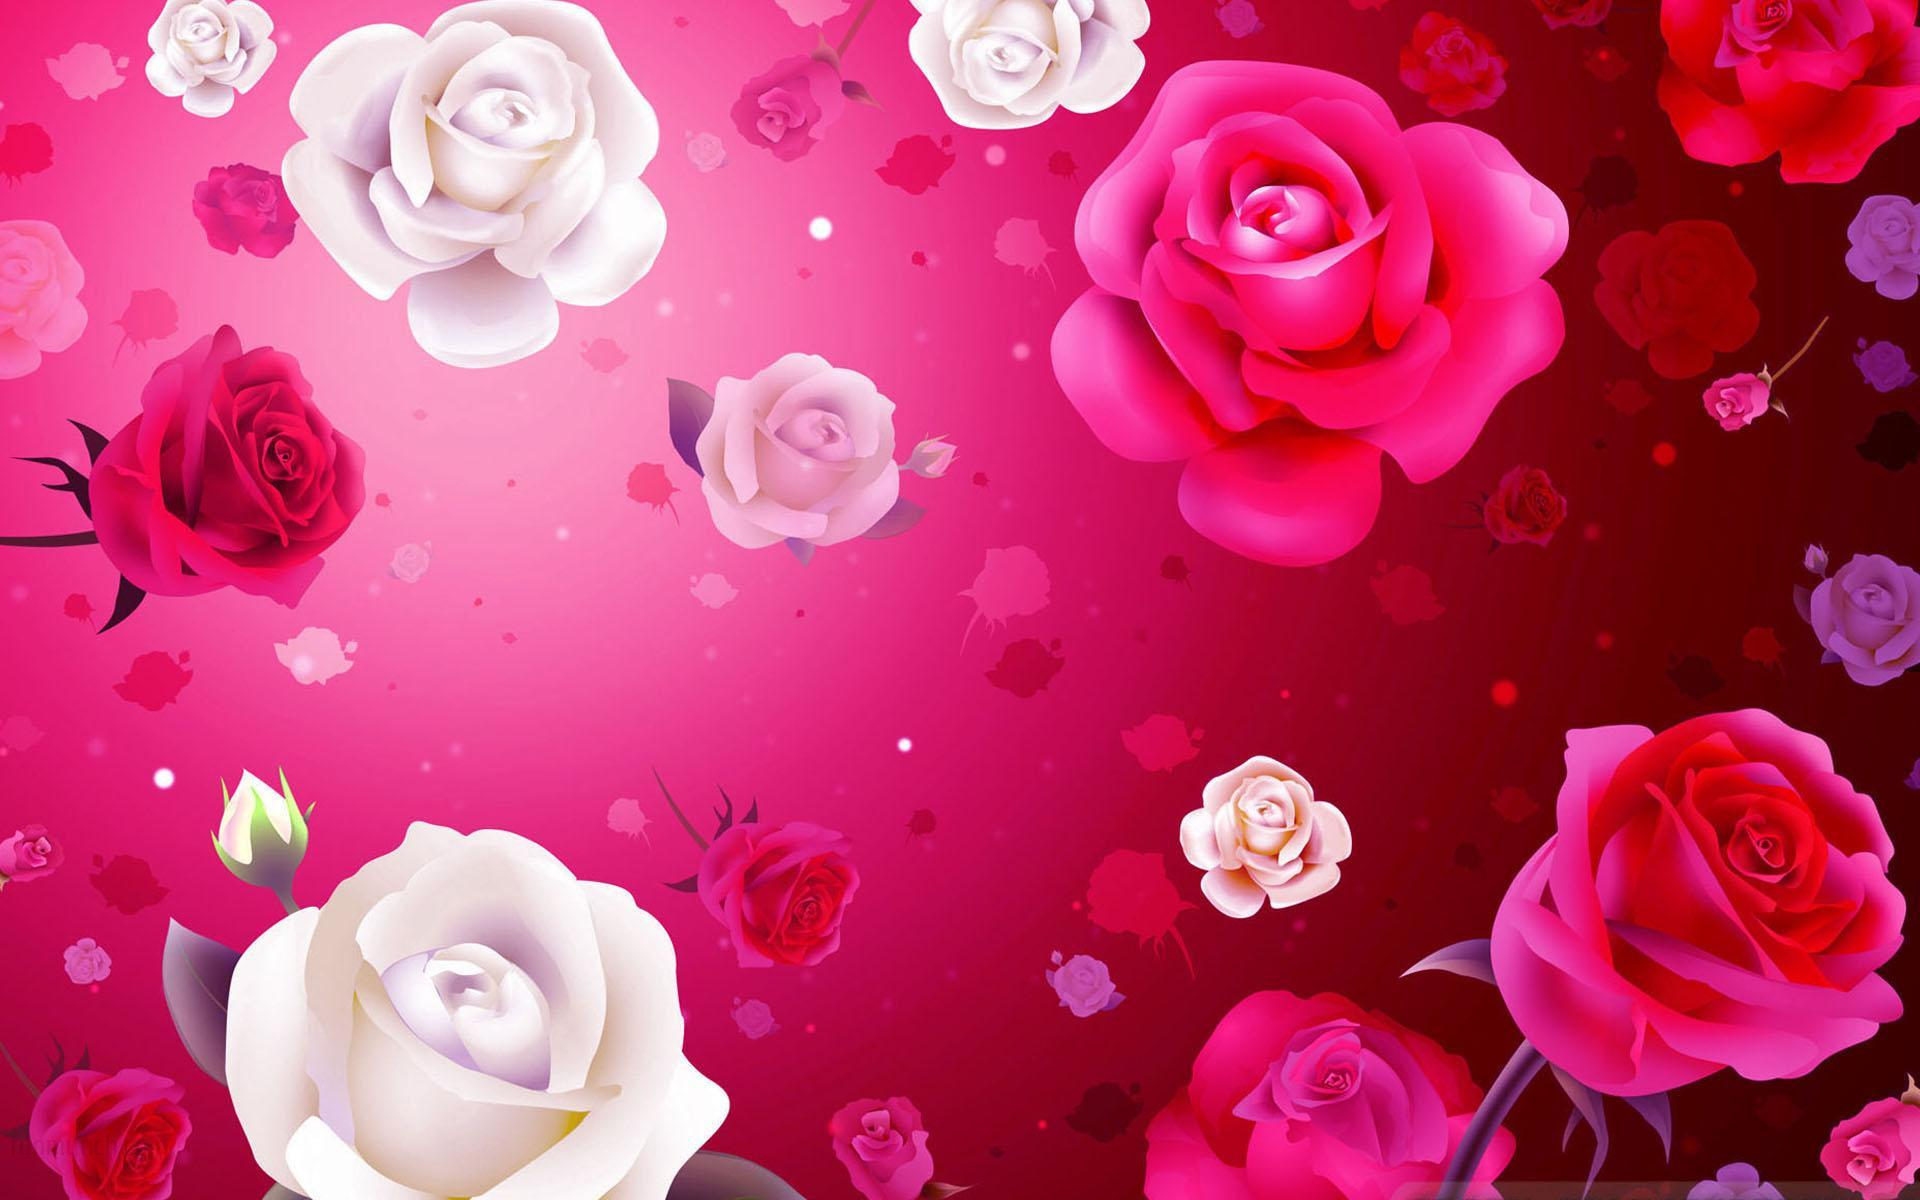 Valentine S Day 2014 Desktop Background Wallpaper High Definition